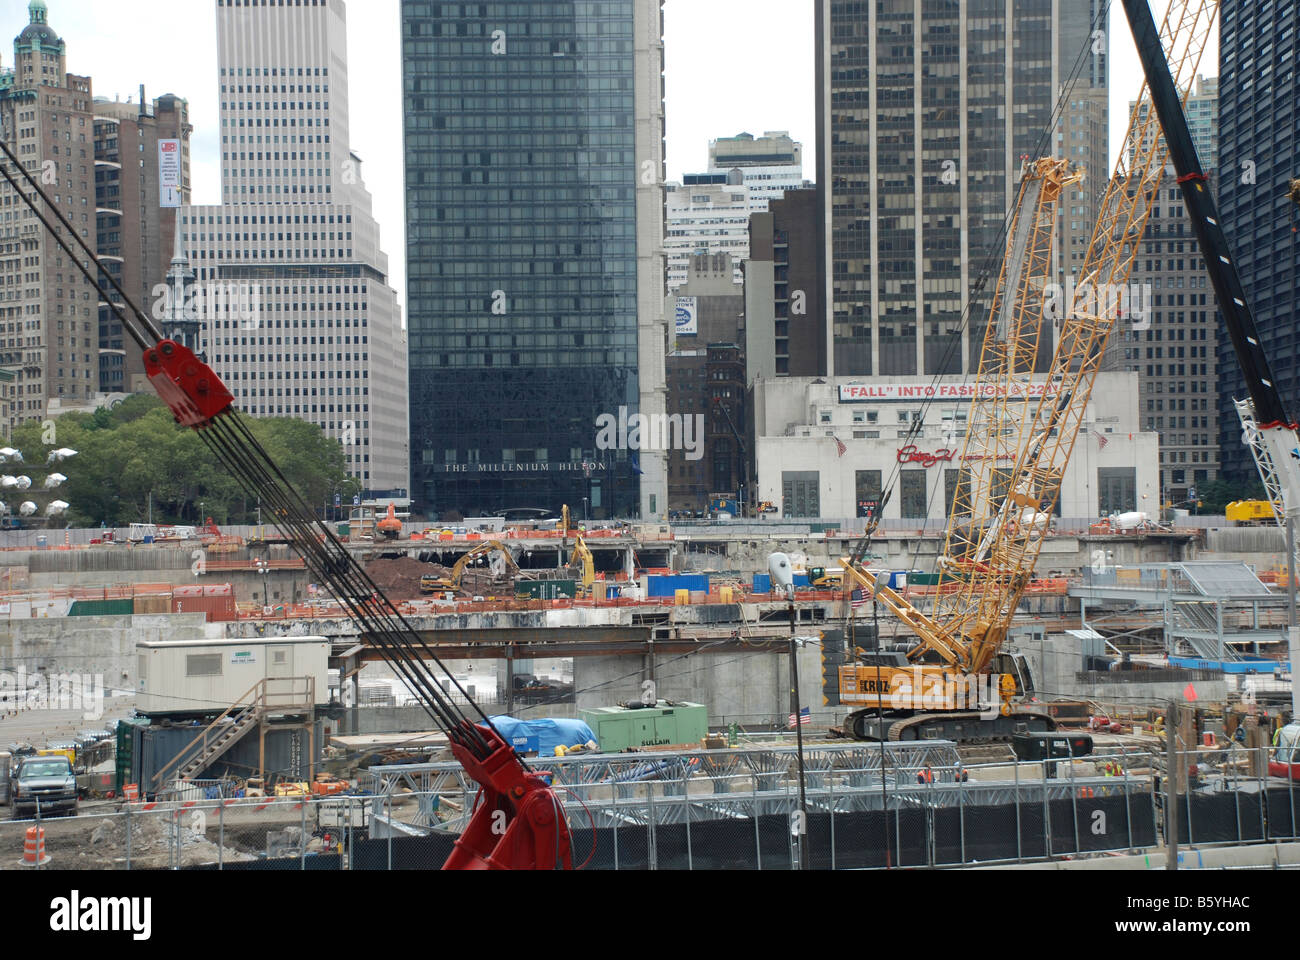 Ground Zero New York construction site for the Peace Tower - Stock Image